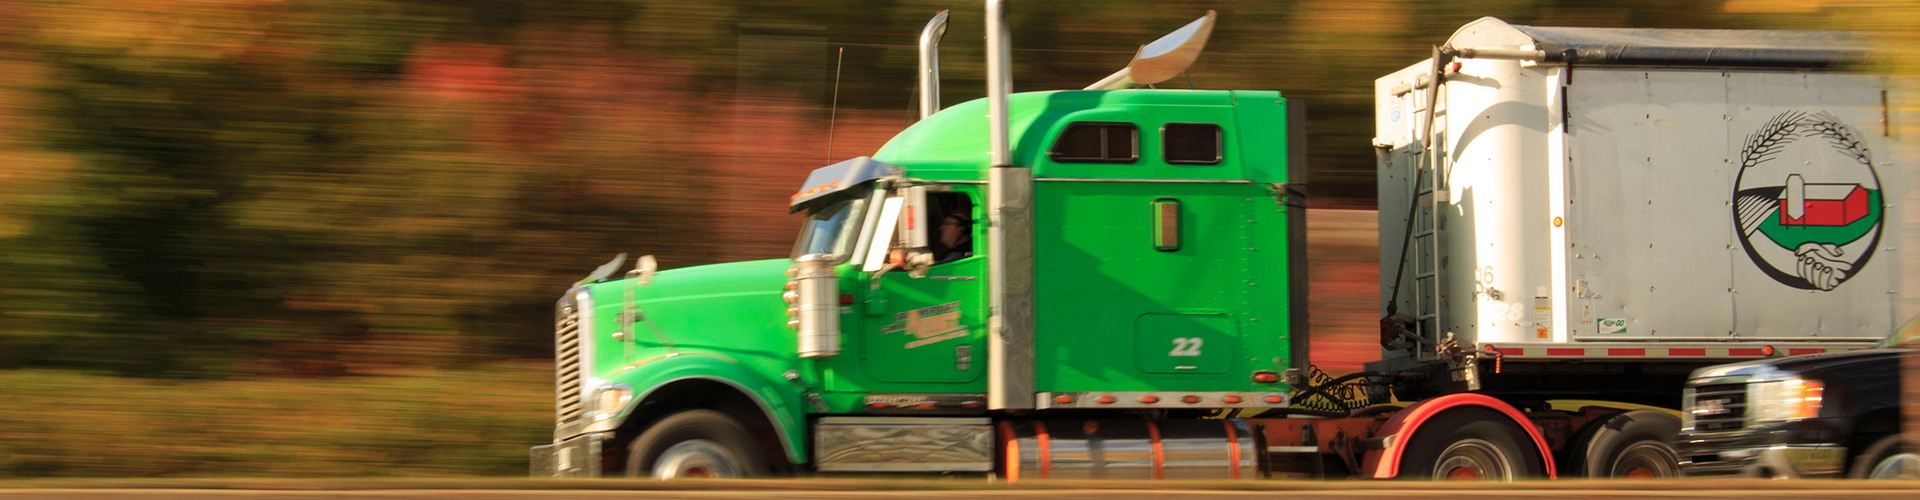 Truck and Auto Parts for New and Vintage Vehicles